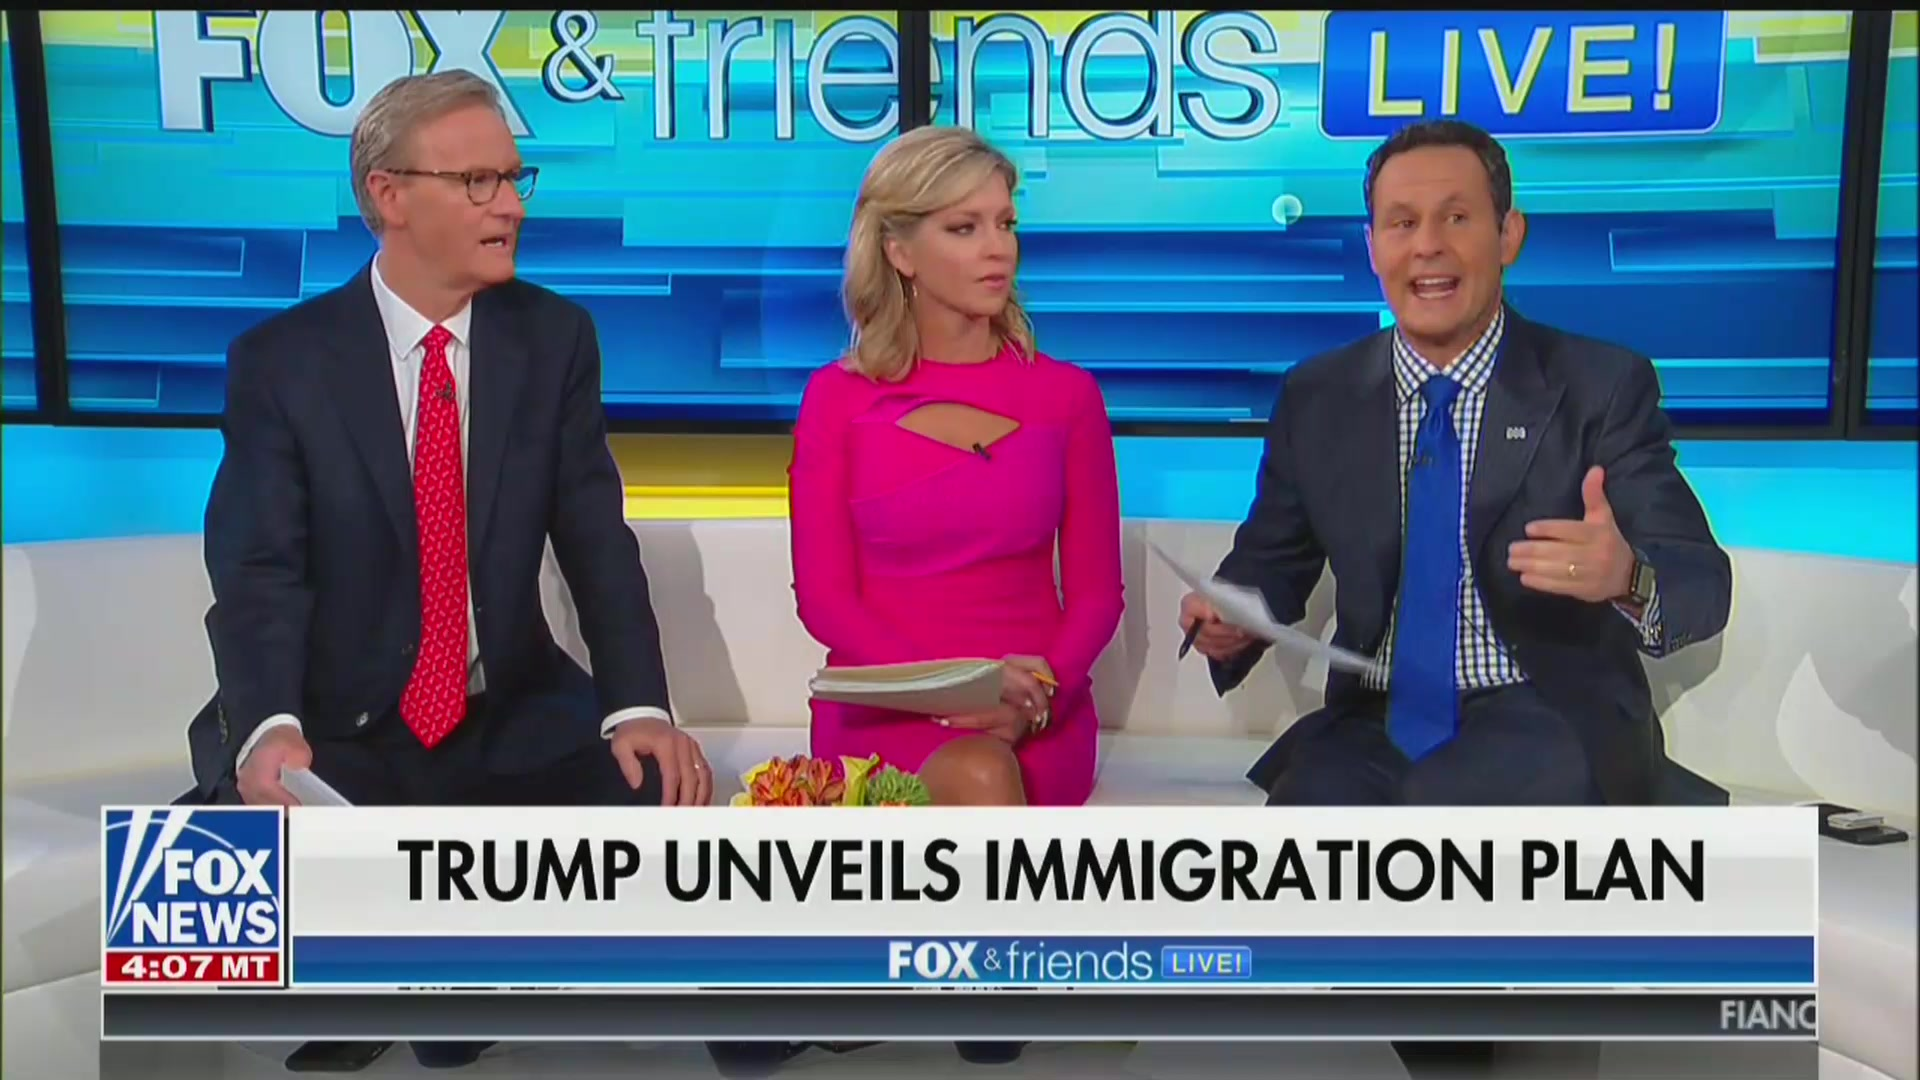 Fox & Friends' Brian Kilmeade: Crisis at Border Is 'Almost Like' 9/11